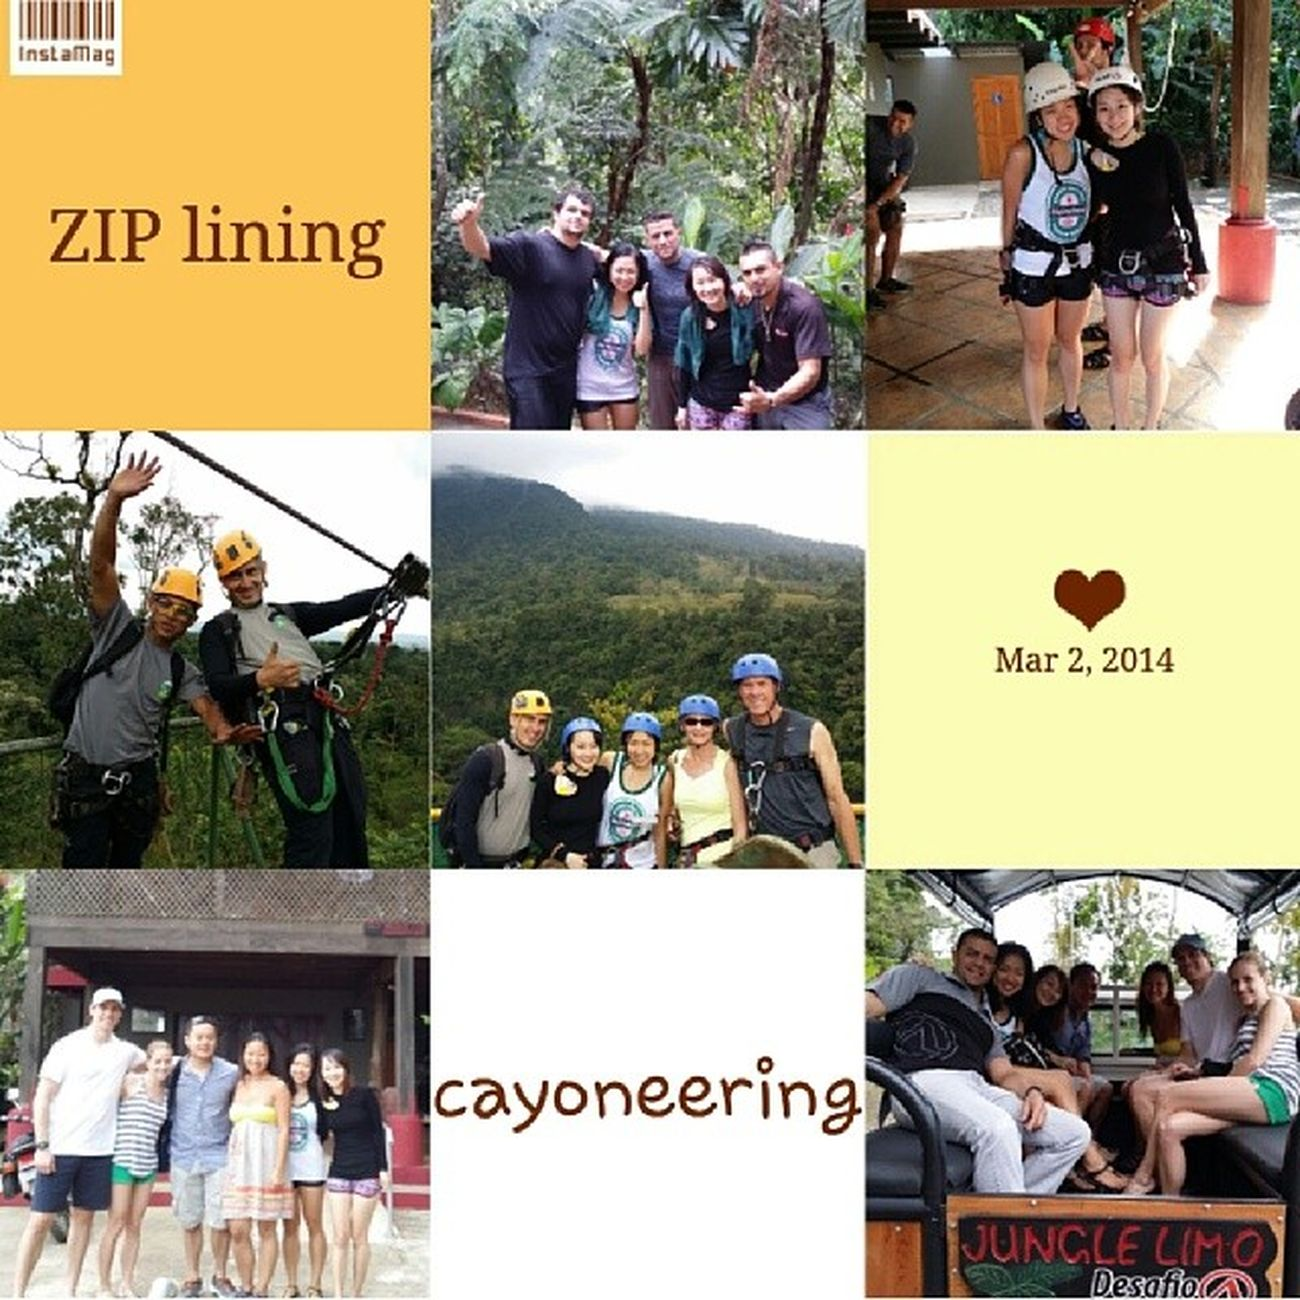 day 1: over 6km of ziplining and insane waterfall repelling with some amazing new friends! Tarzanwannabes Lafortuna